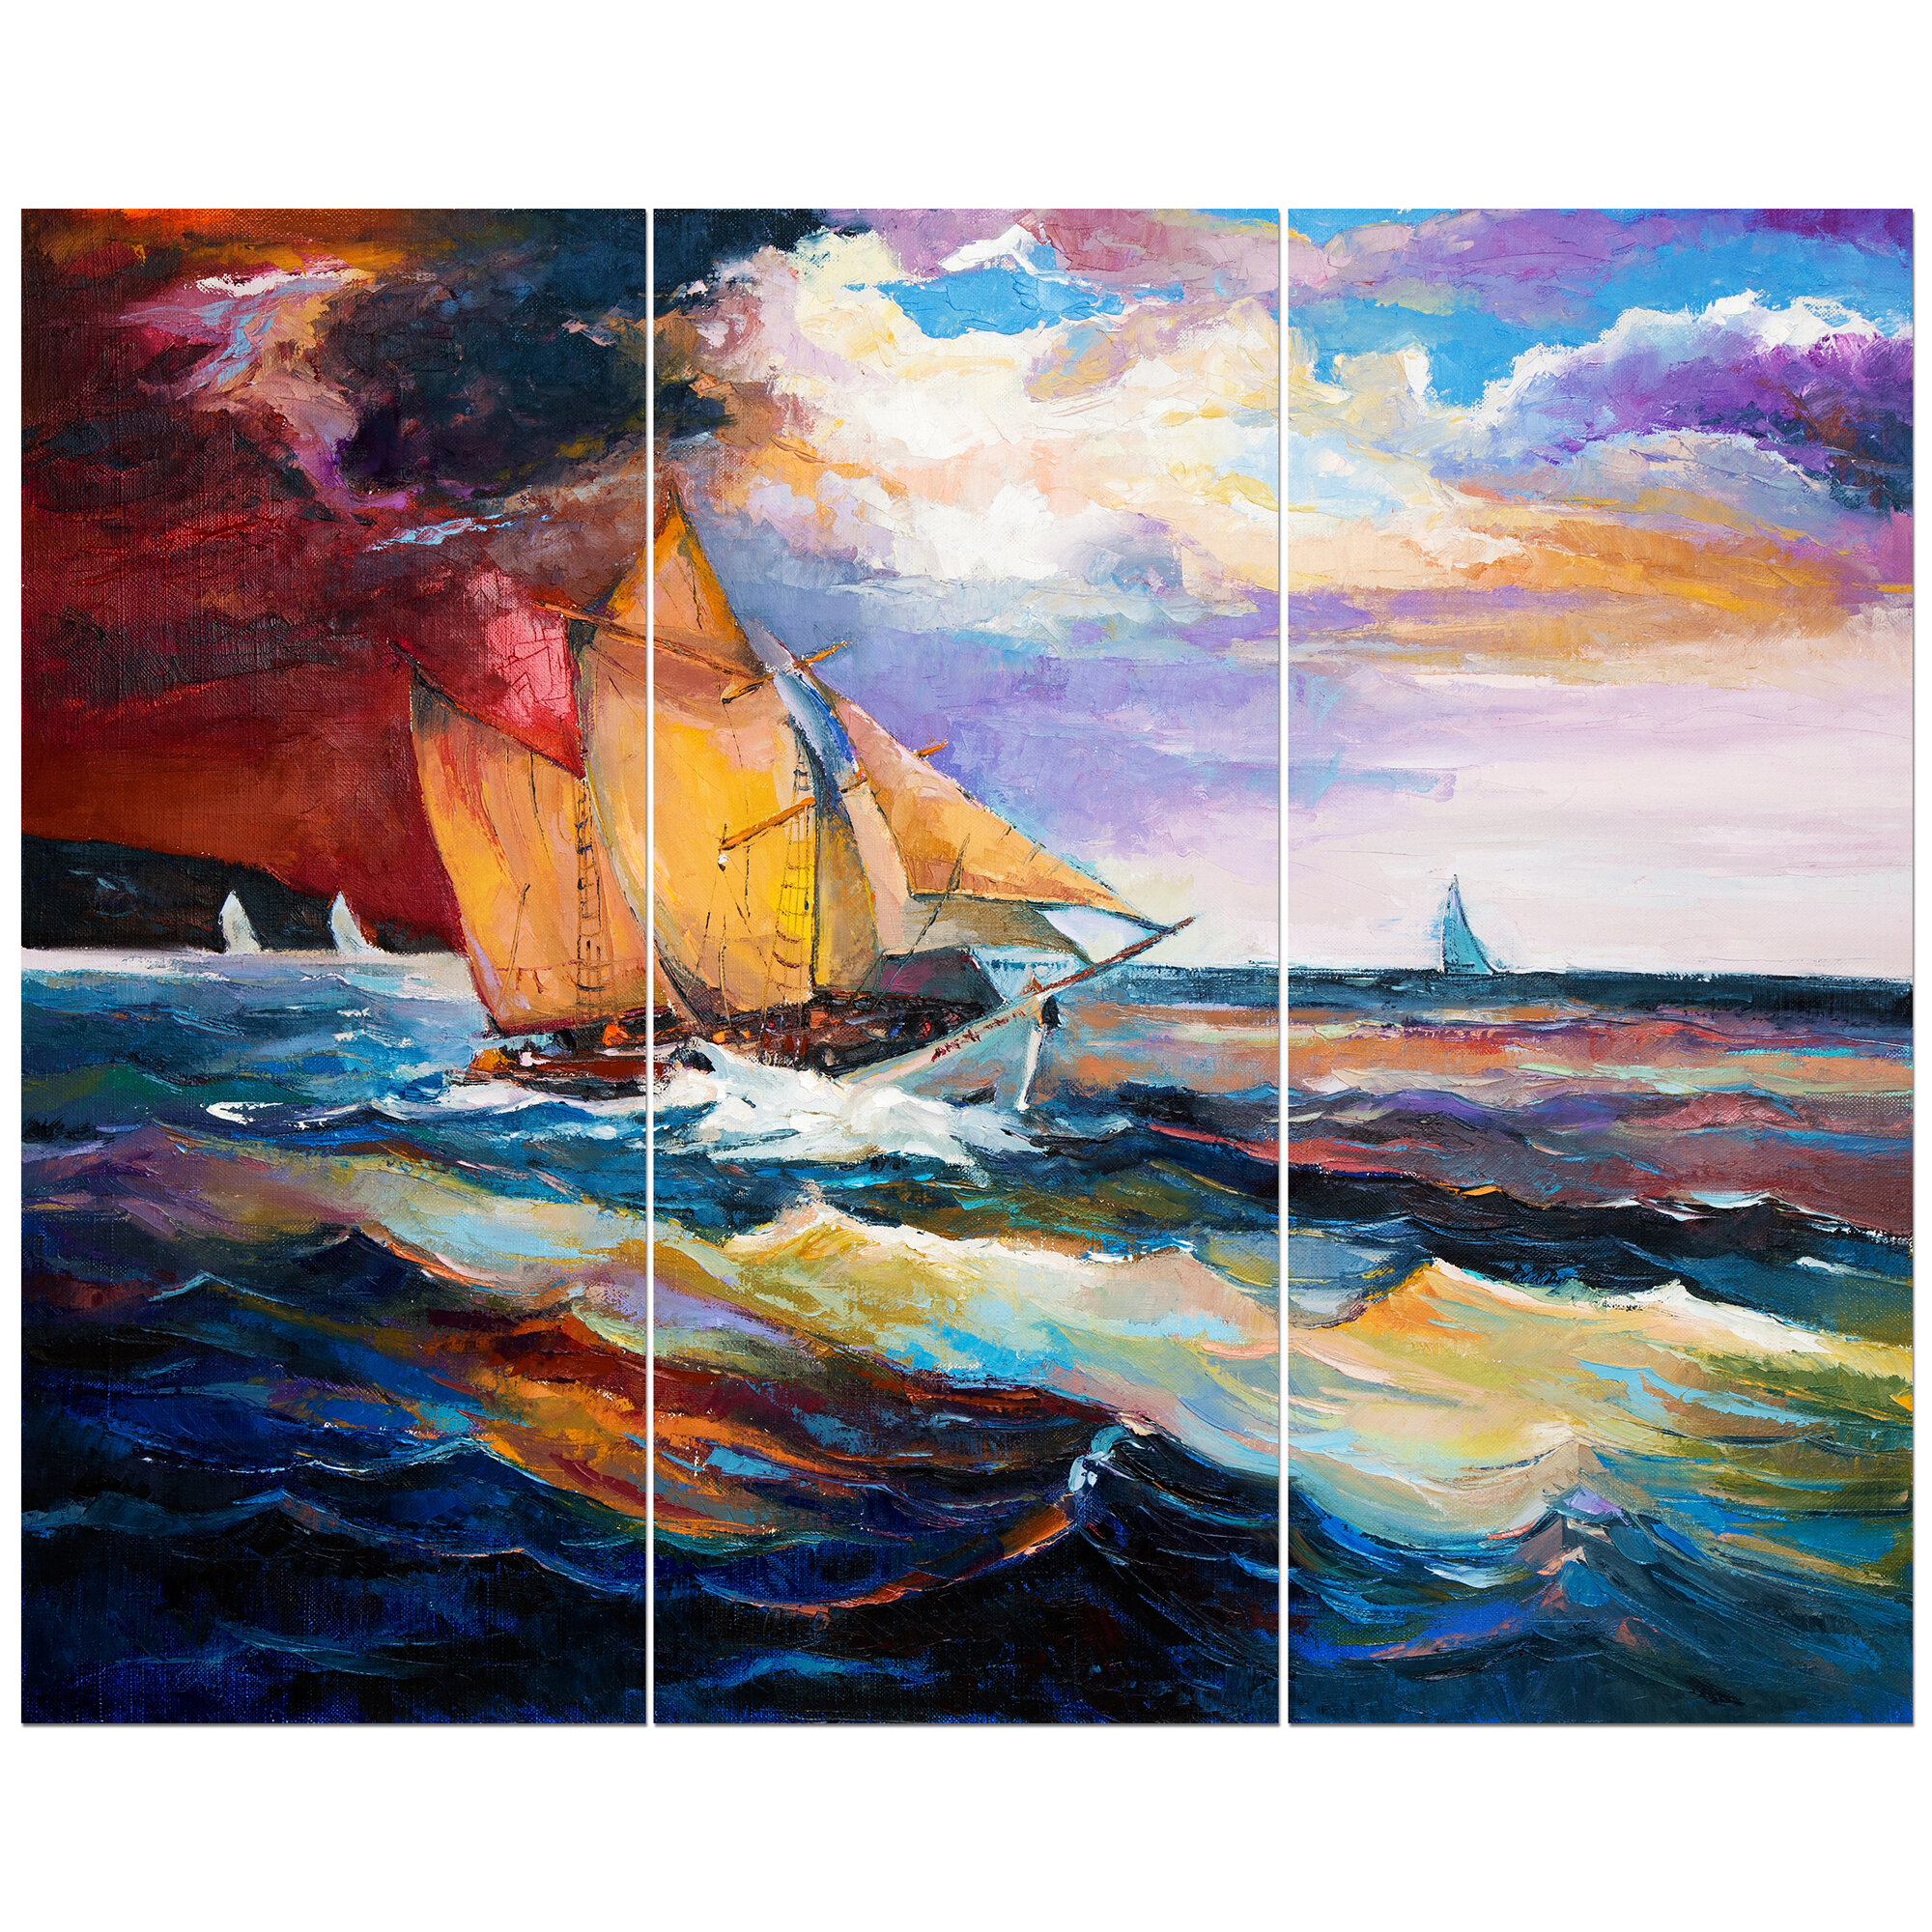 SHIP IN STORM STORMY SEA WAVES SAILBOAT SEASCAPE PAINTING ART REAL CANVAS PRINT